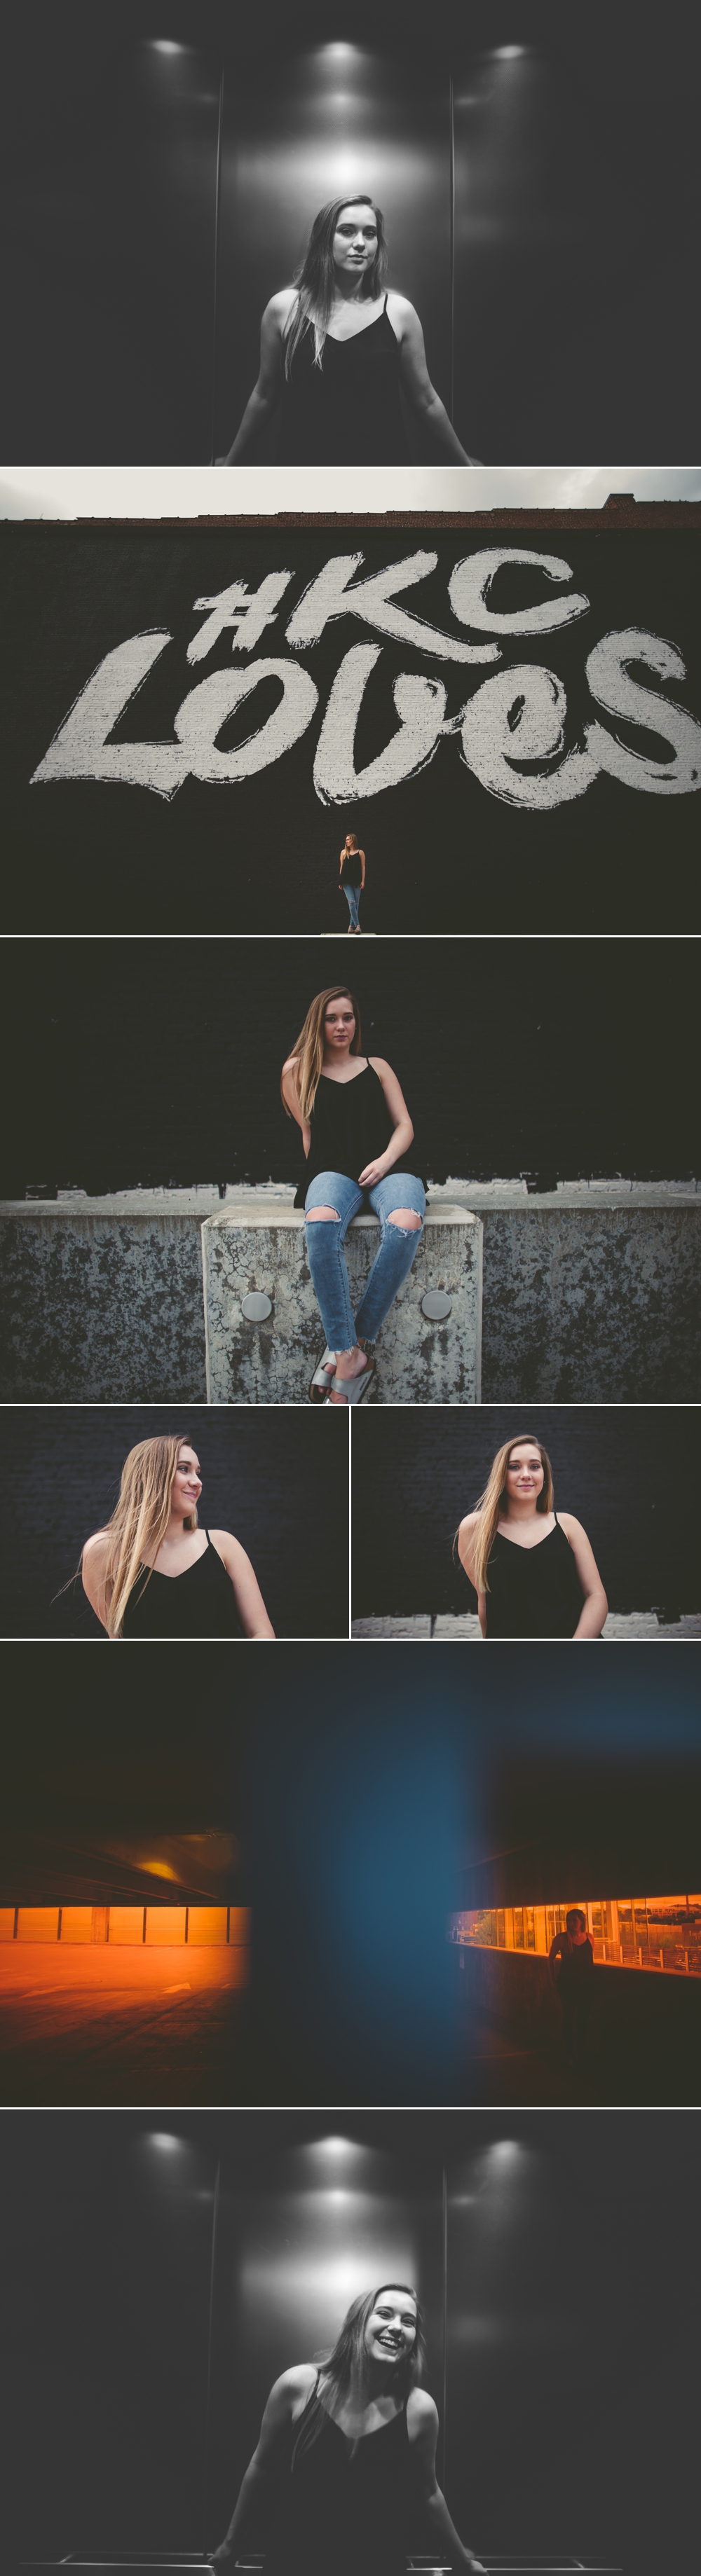 jason_domingues_photography_senior_pictures_kansas_city_portraits_2.jpg